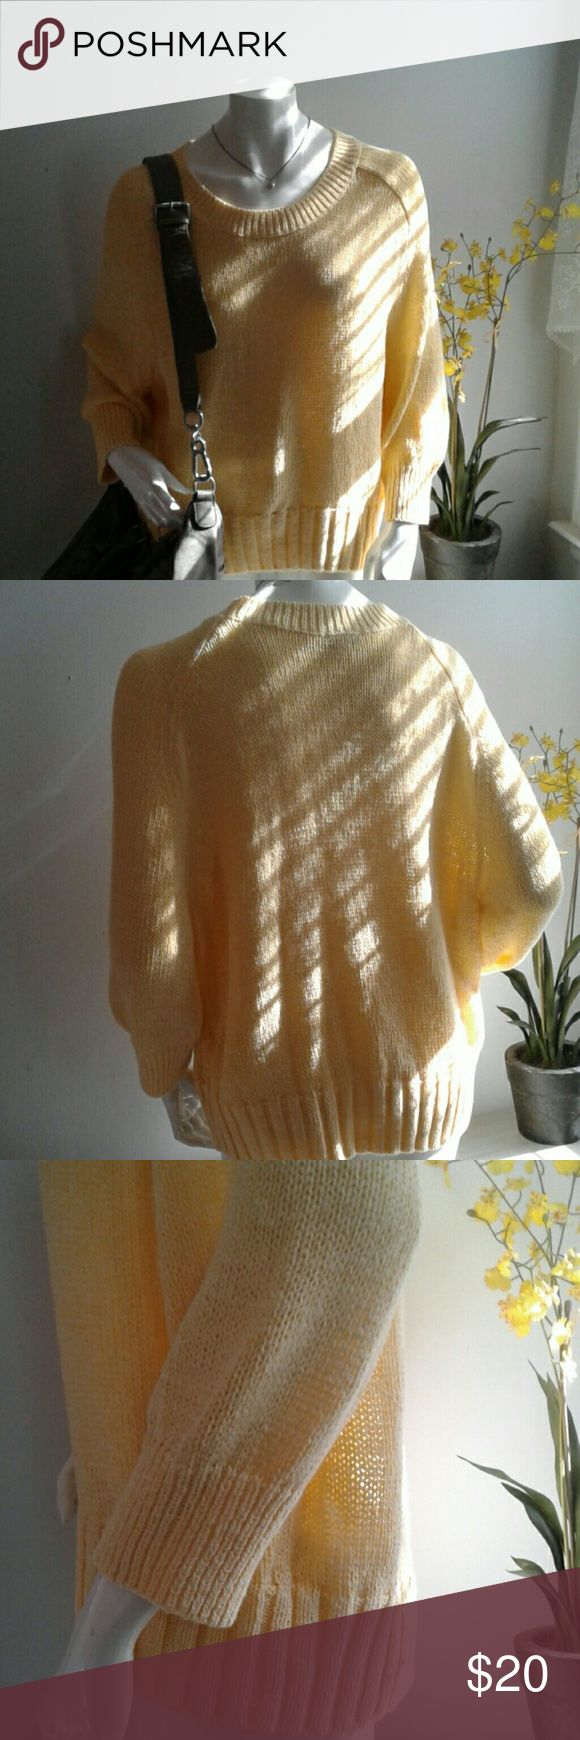 """Gap yellow knit pullover like new XL Sweater is shown on a sz 6 form. It is not a full length sleeve.  Like new condition from smoke free home. Shoulder to hem 25"""", across underarms 23"""" and the shortest length of sleeve underarm toward wrist is 10"""" Price firm, no offers please. GAP Sweaters Crew & Scoop Necks"""